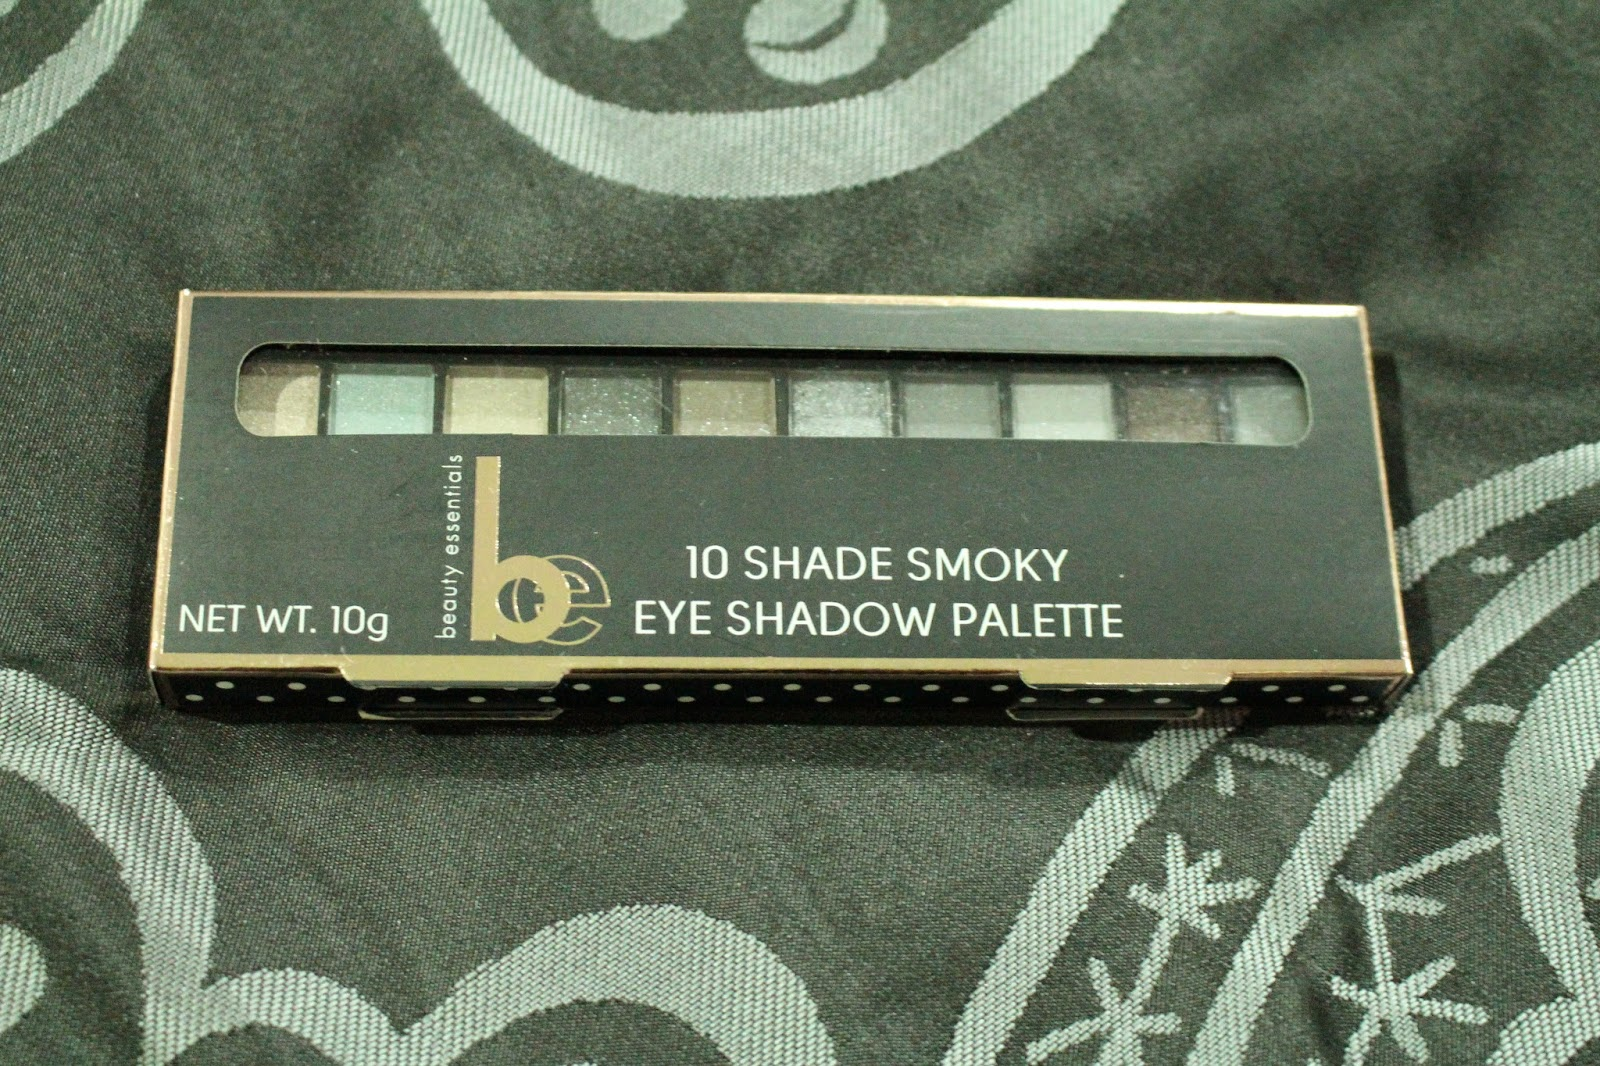 Beauty Essentials 10 Shade Smoky Eye Shadow Palette